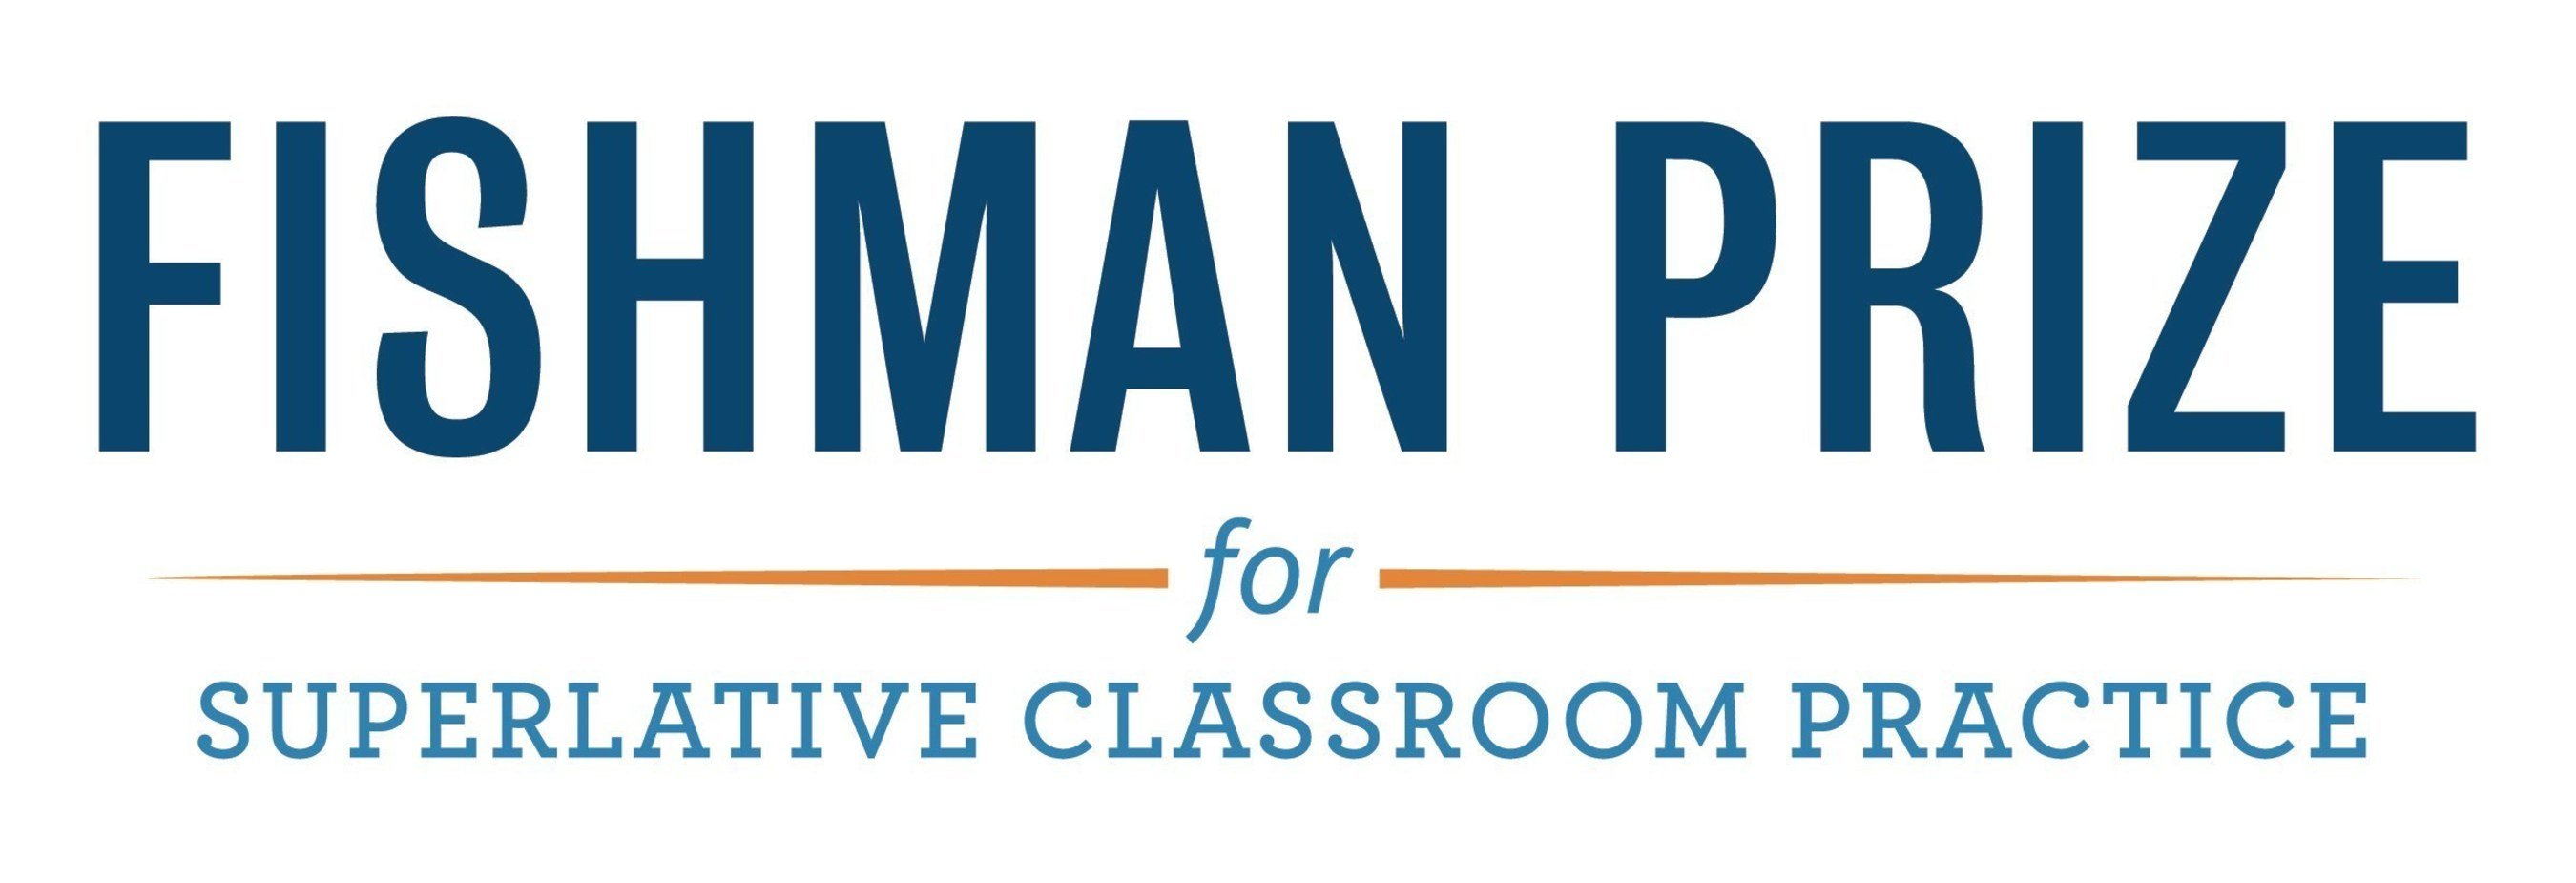 TNTP seeks outstanding teachers from high-poverty schools for $25,000 Fishman Prize. Apply or nominate someone today!